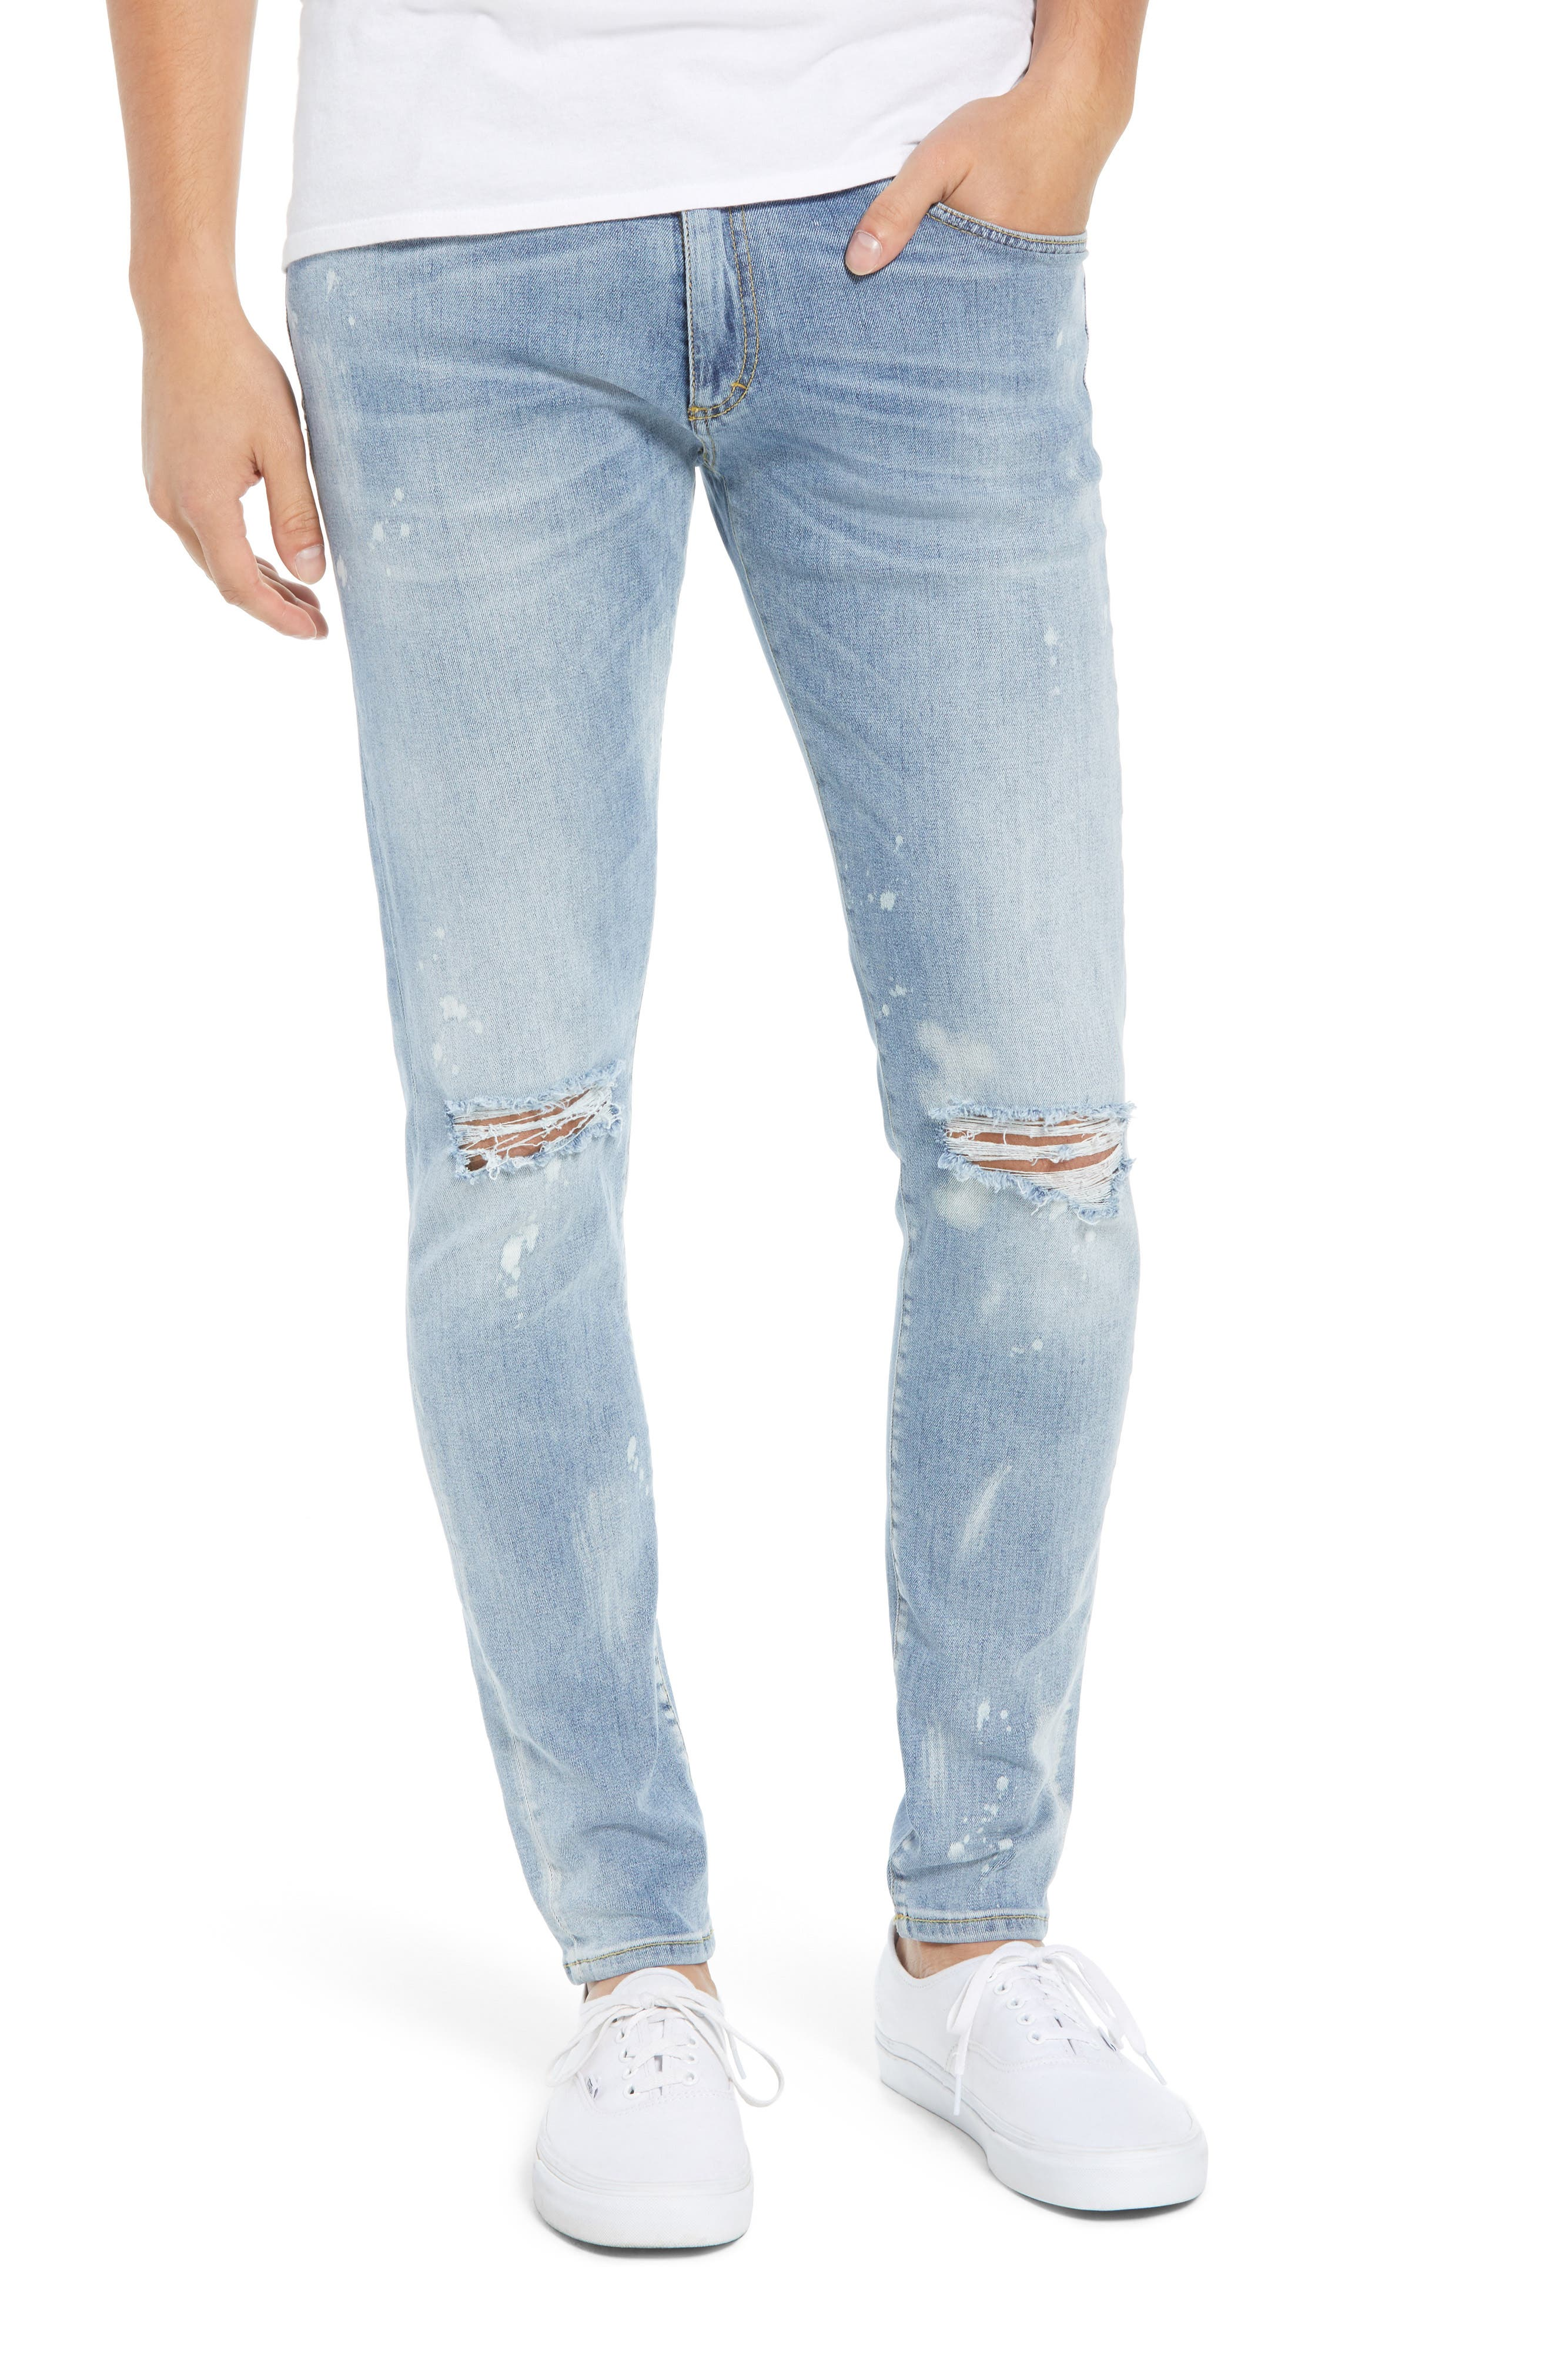 Destroyer Ripped Slim Fit Jeans in Blue